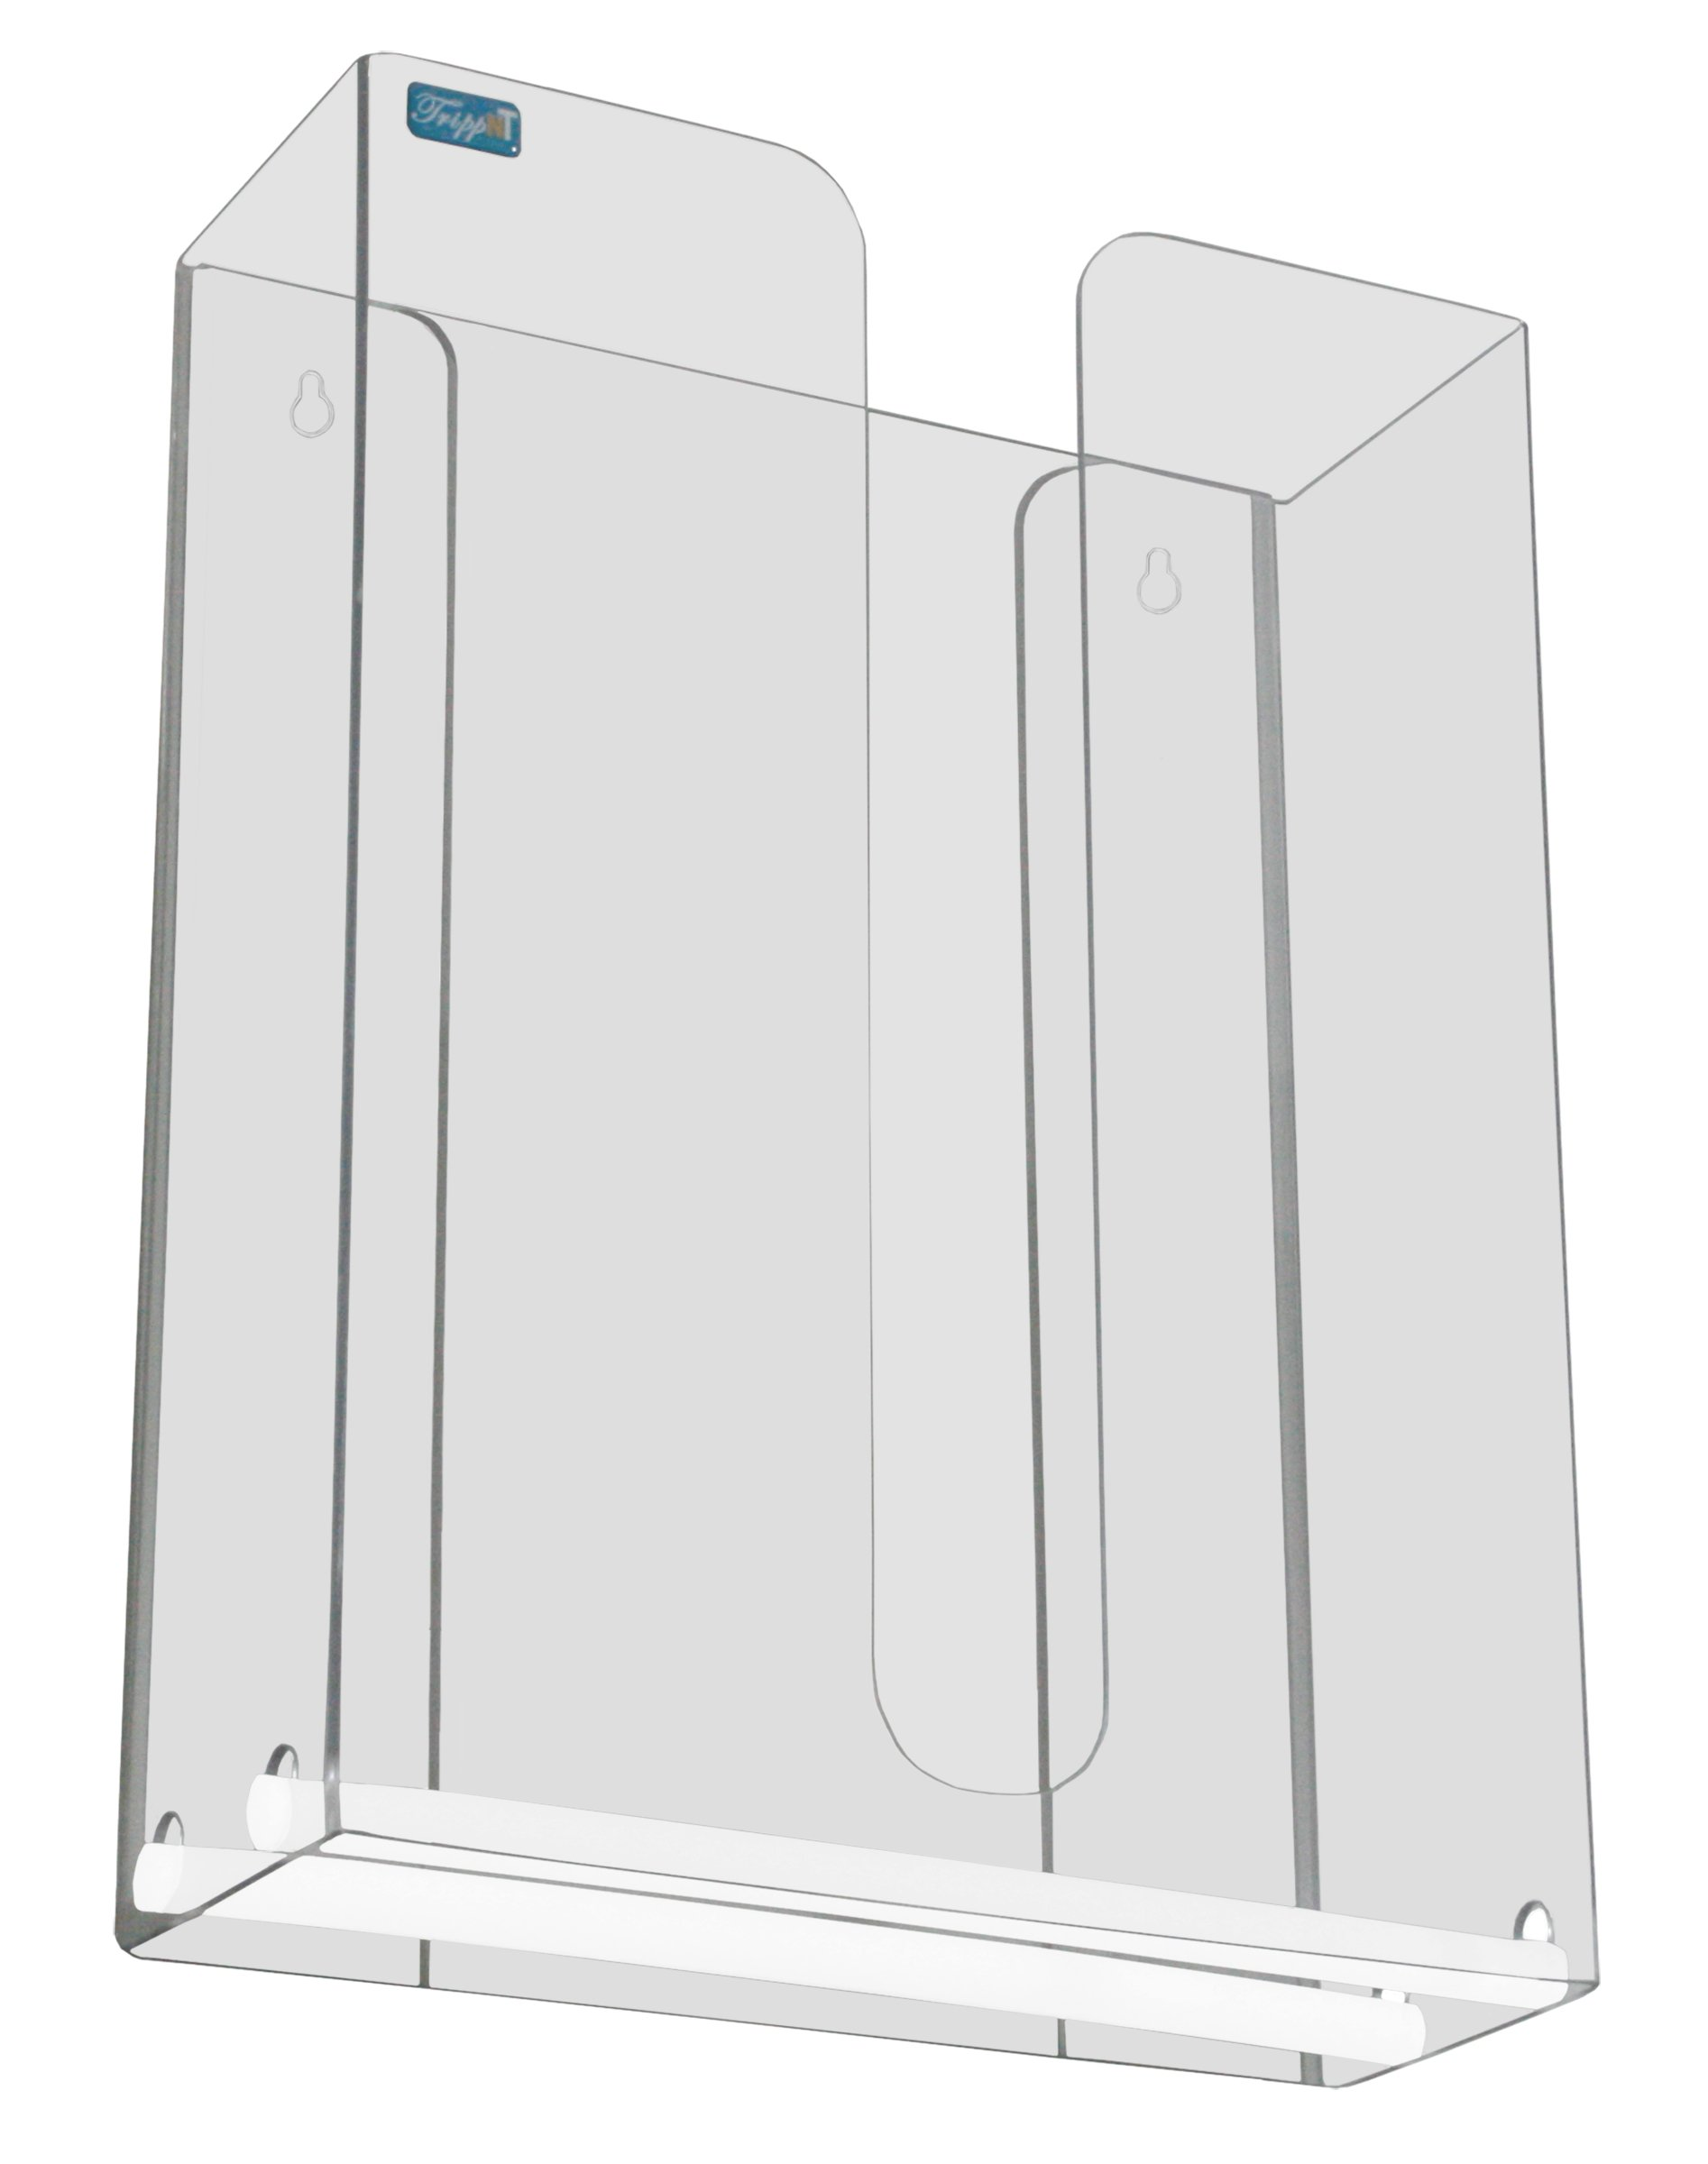 TrippNT 51935 Clear PETG Glider Two Stack Dual Dispensing Paper Towel Holder 10 7/8'' Width x 14 1/2'' Height x 4 3/8'' Depth